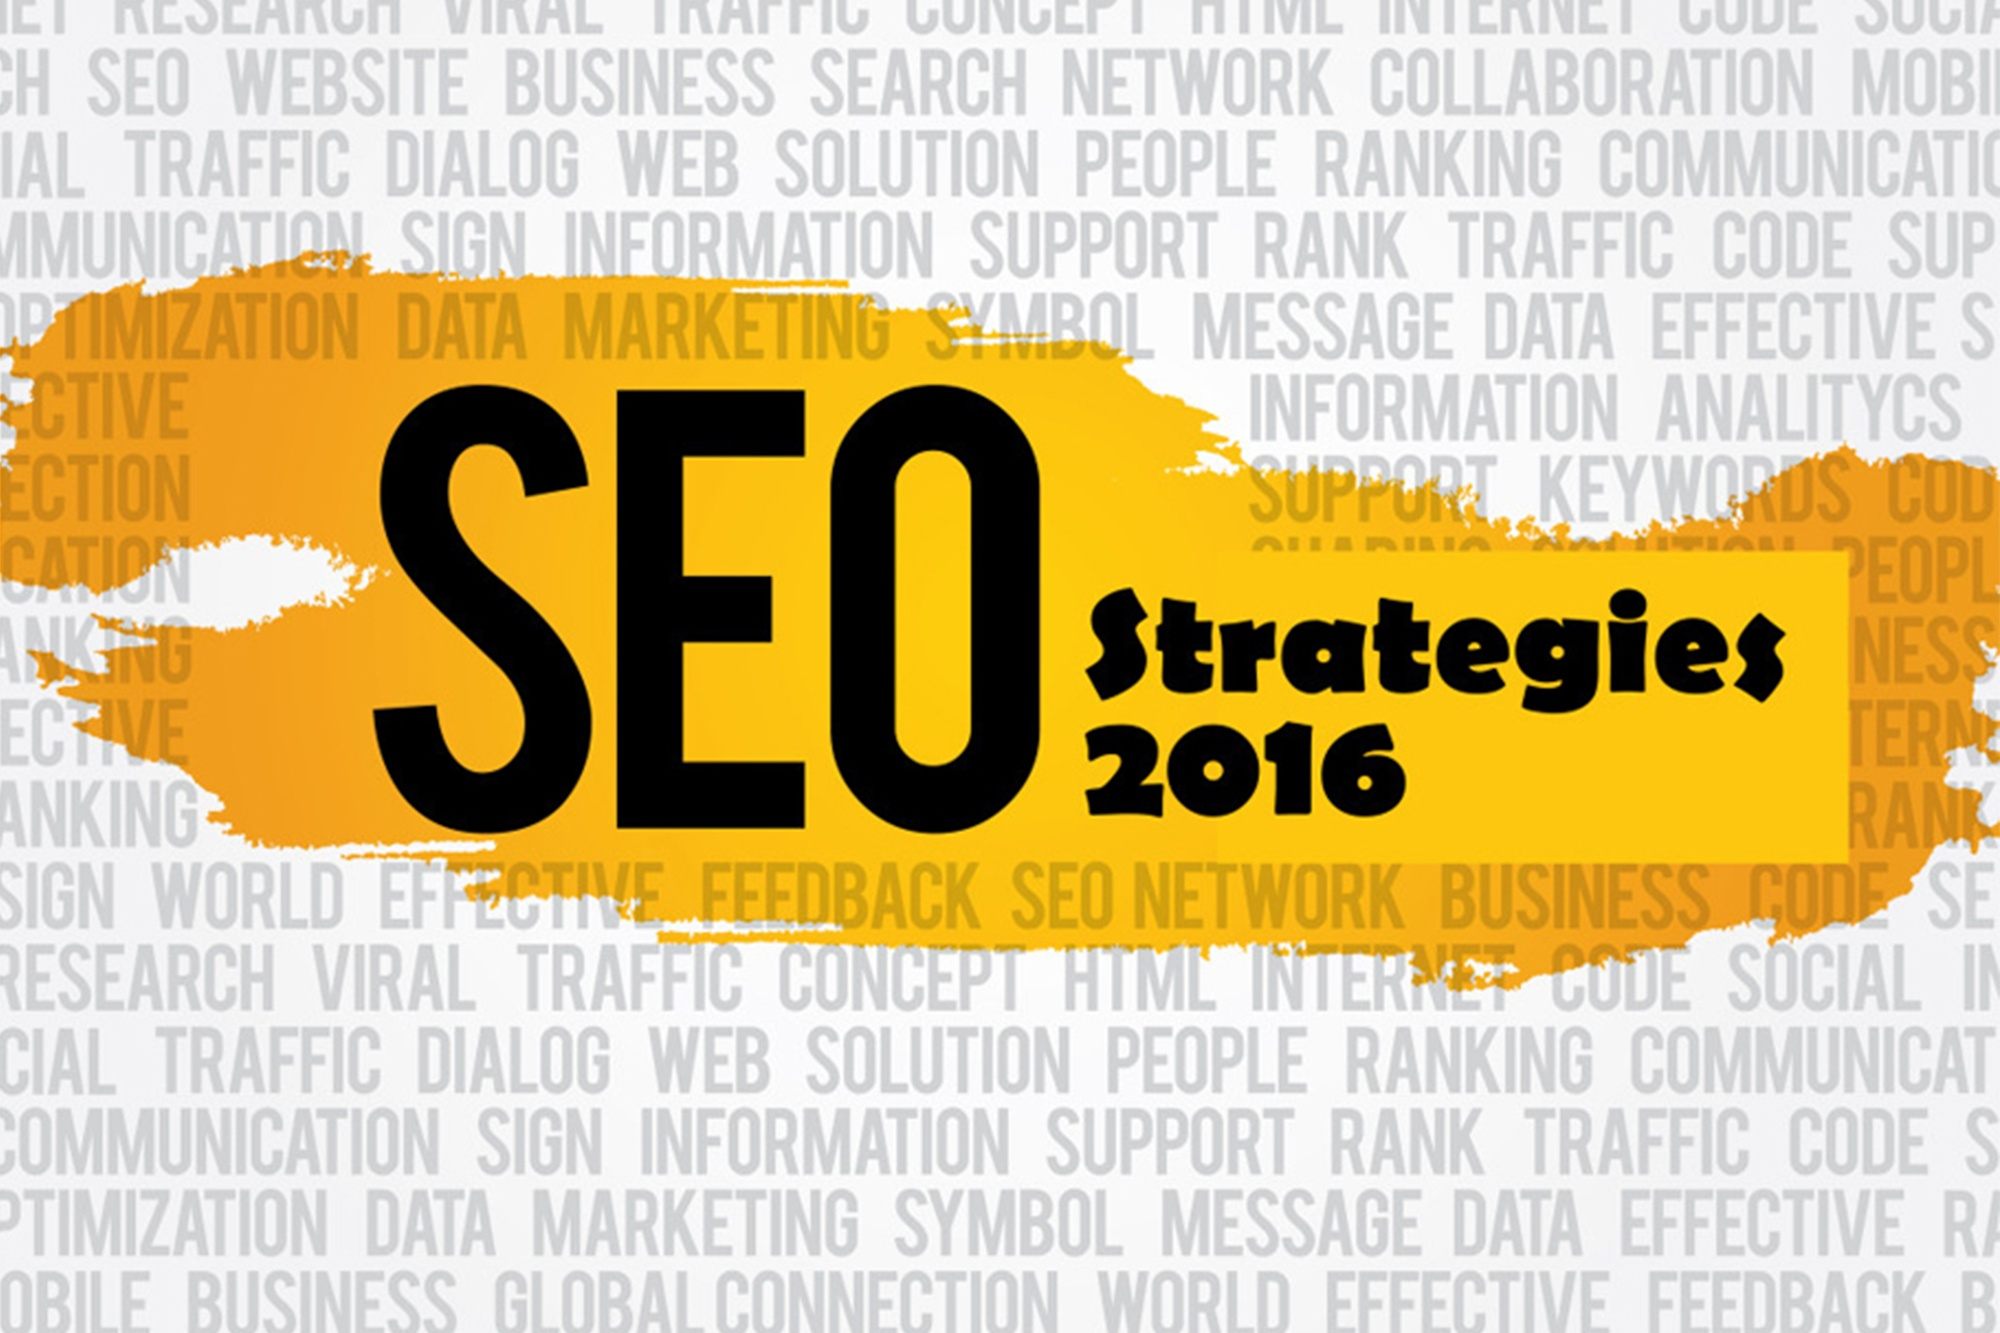 SEO Strategies to Implement in 2016